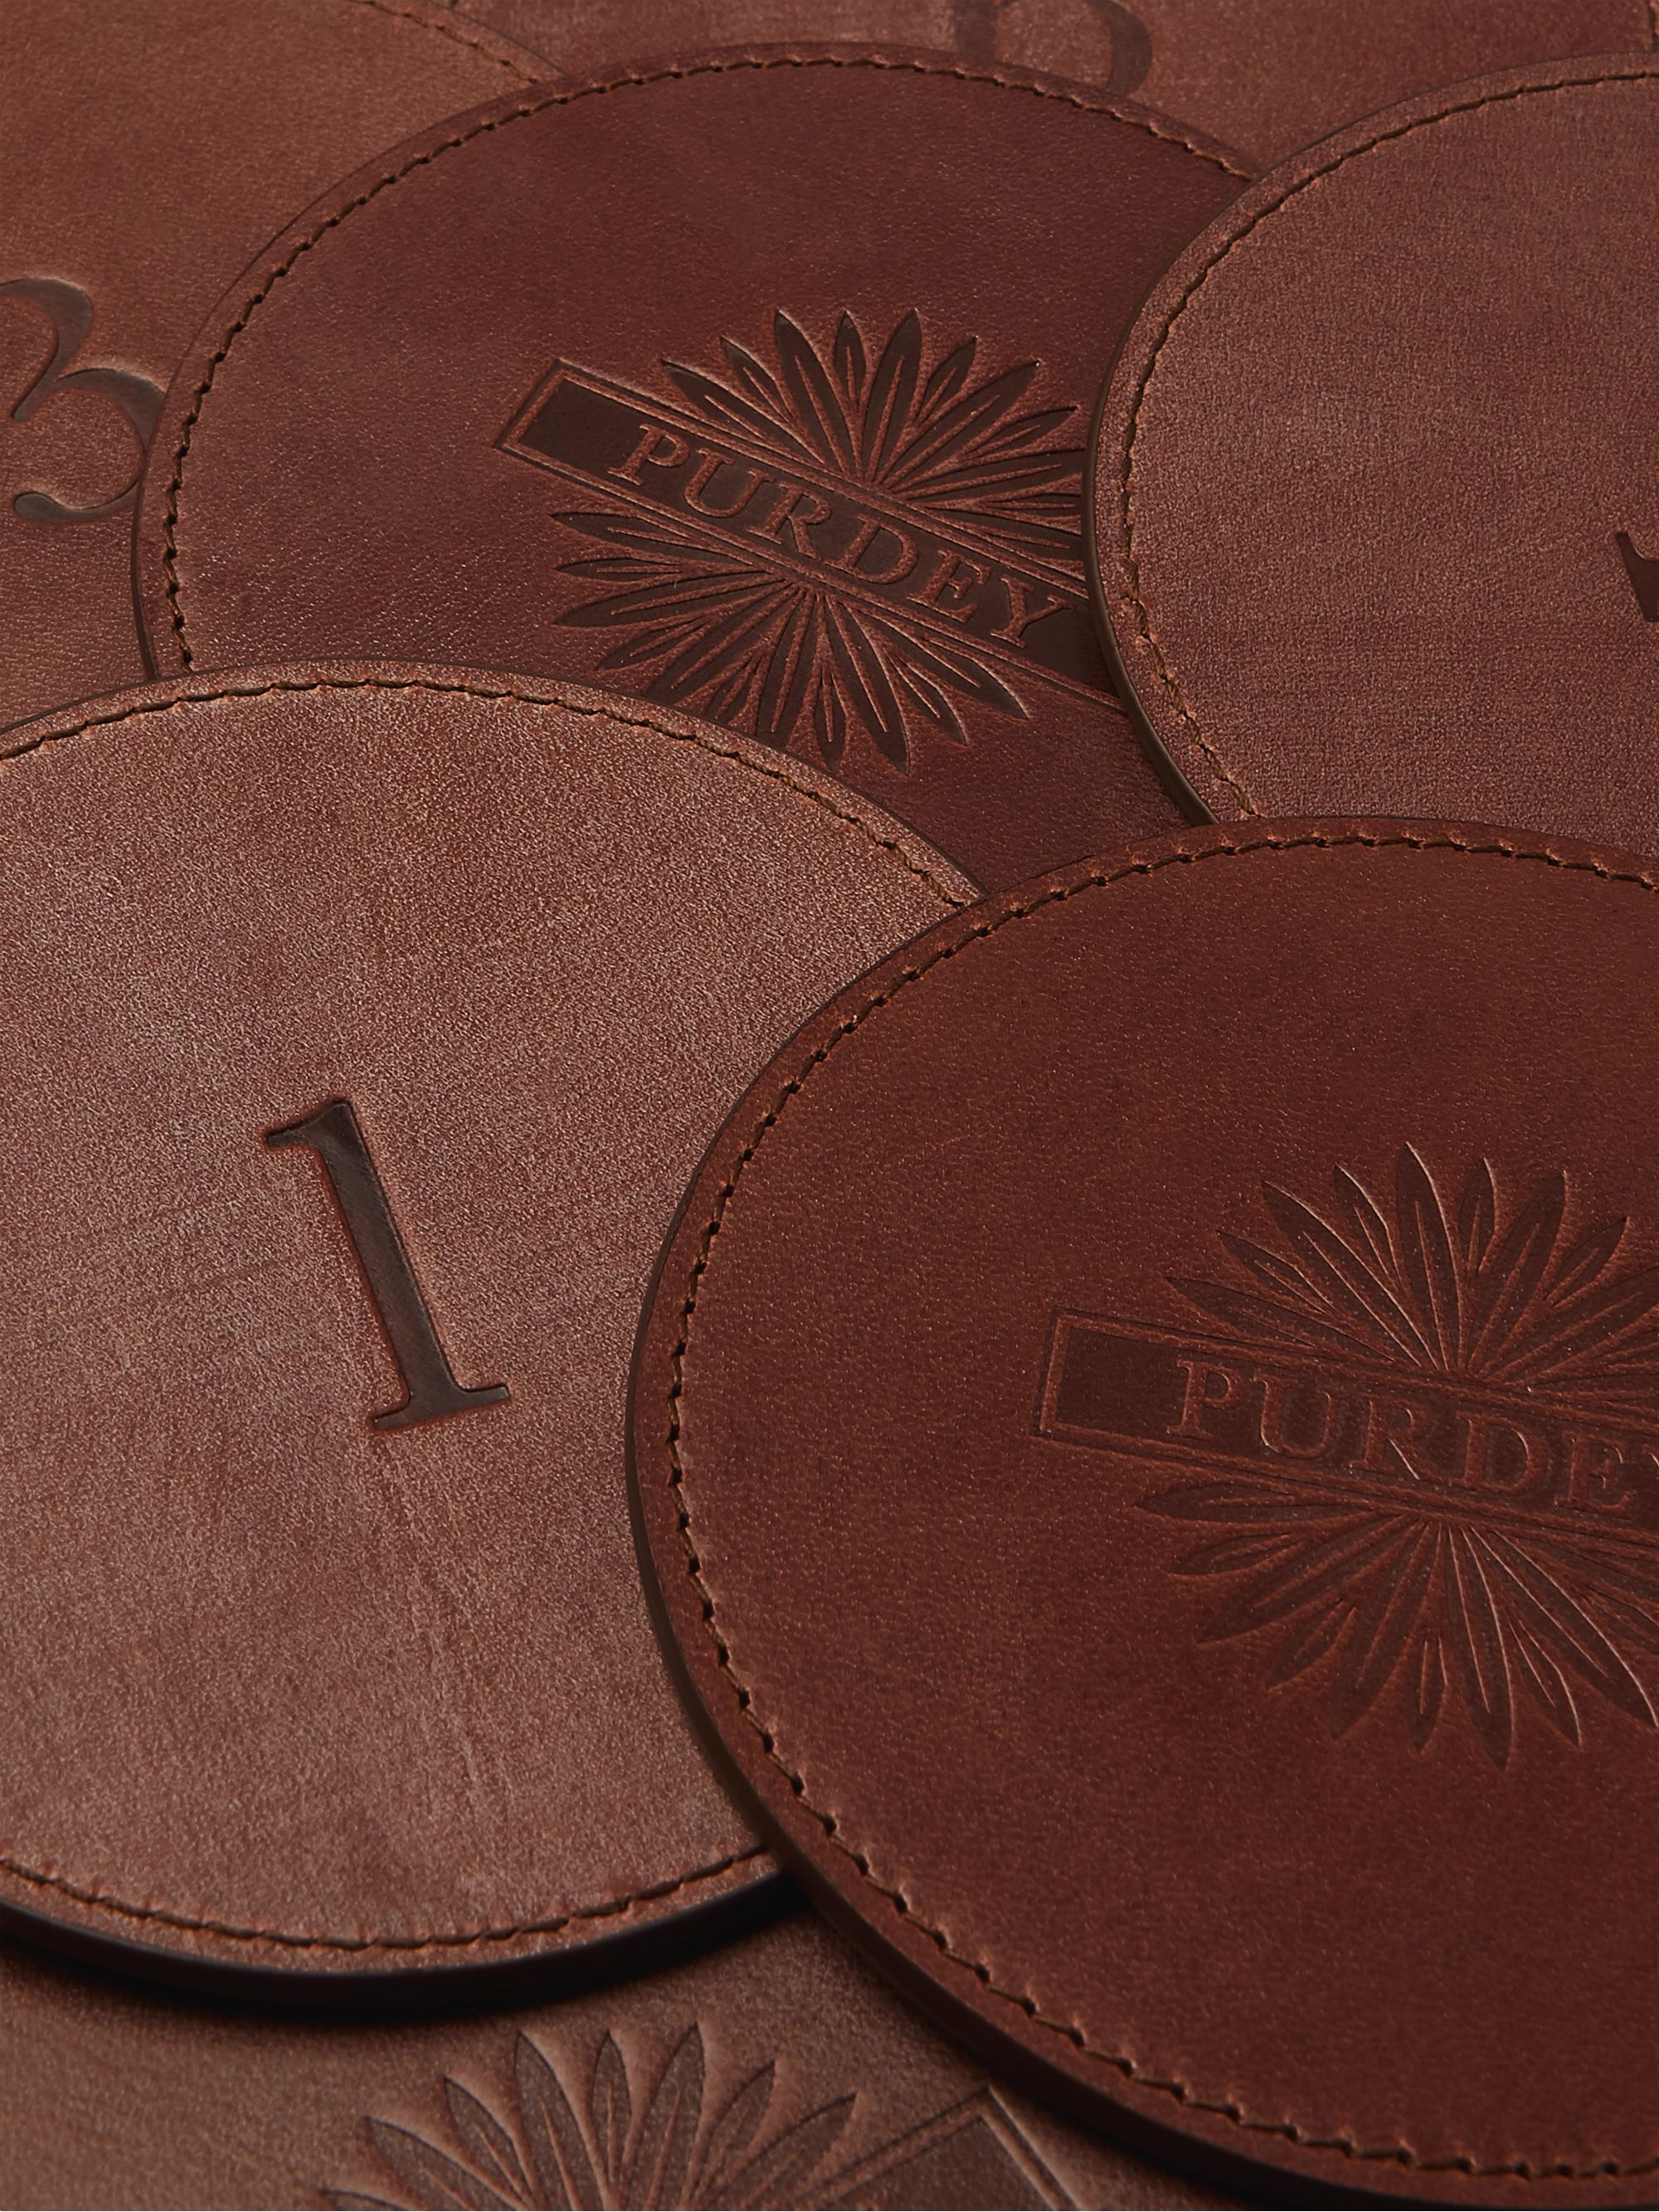 Purdey Set of 9 Leather Coasters